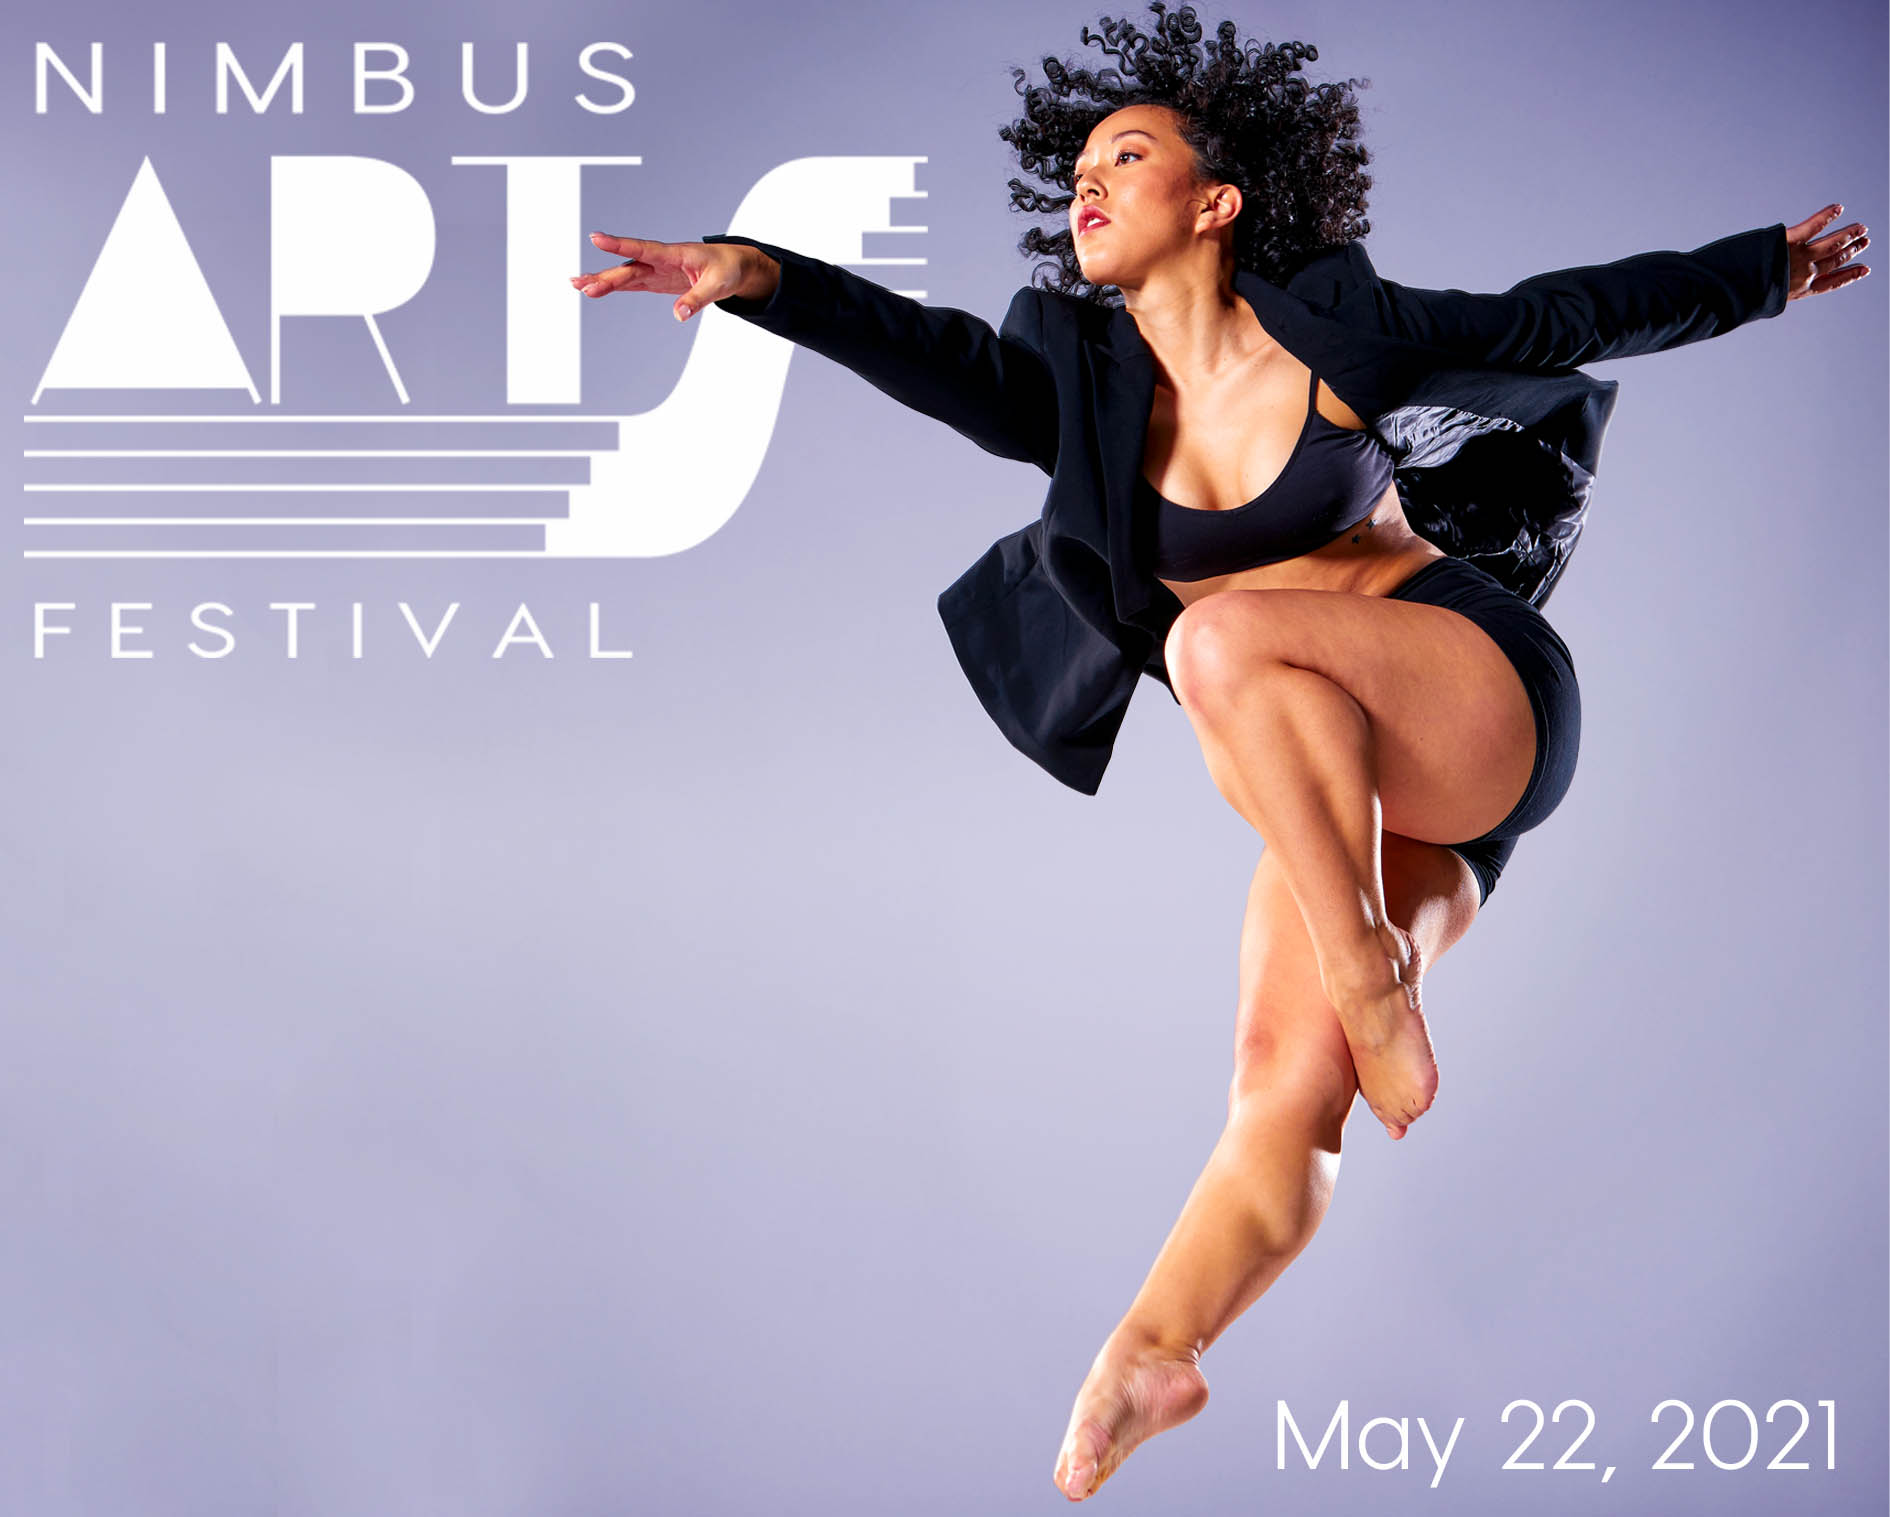 Nimbus Arts Festival Animated Woman caught leaping mid air. Curly black hair wearing a blazer